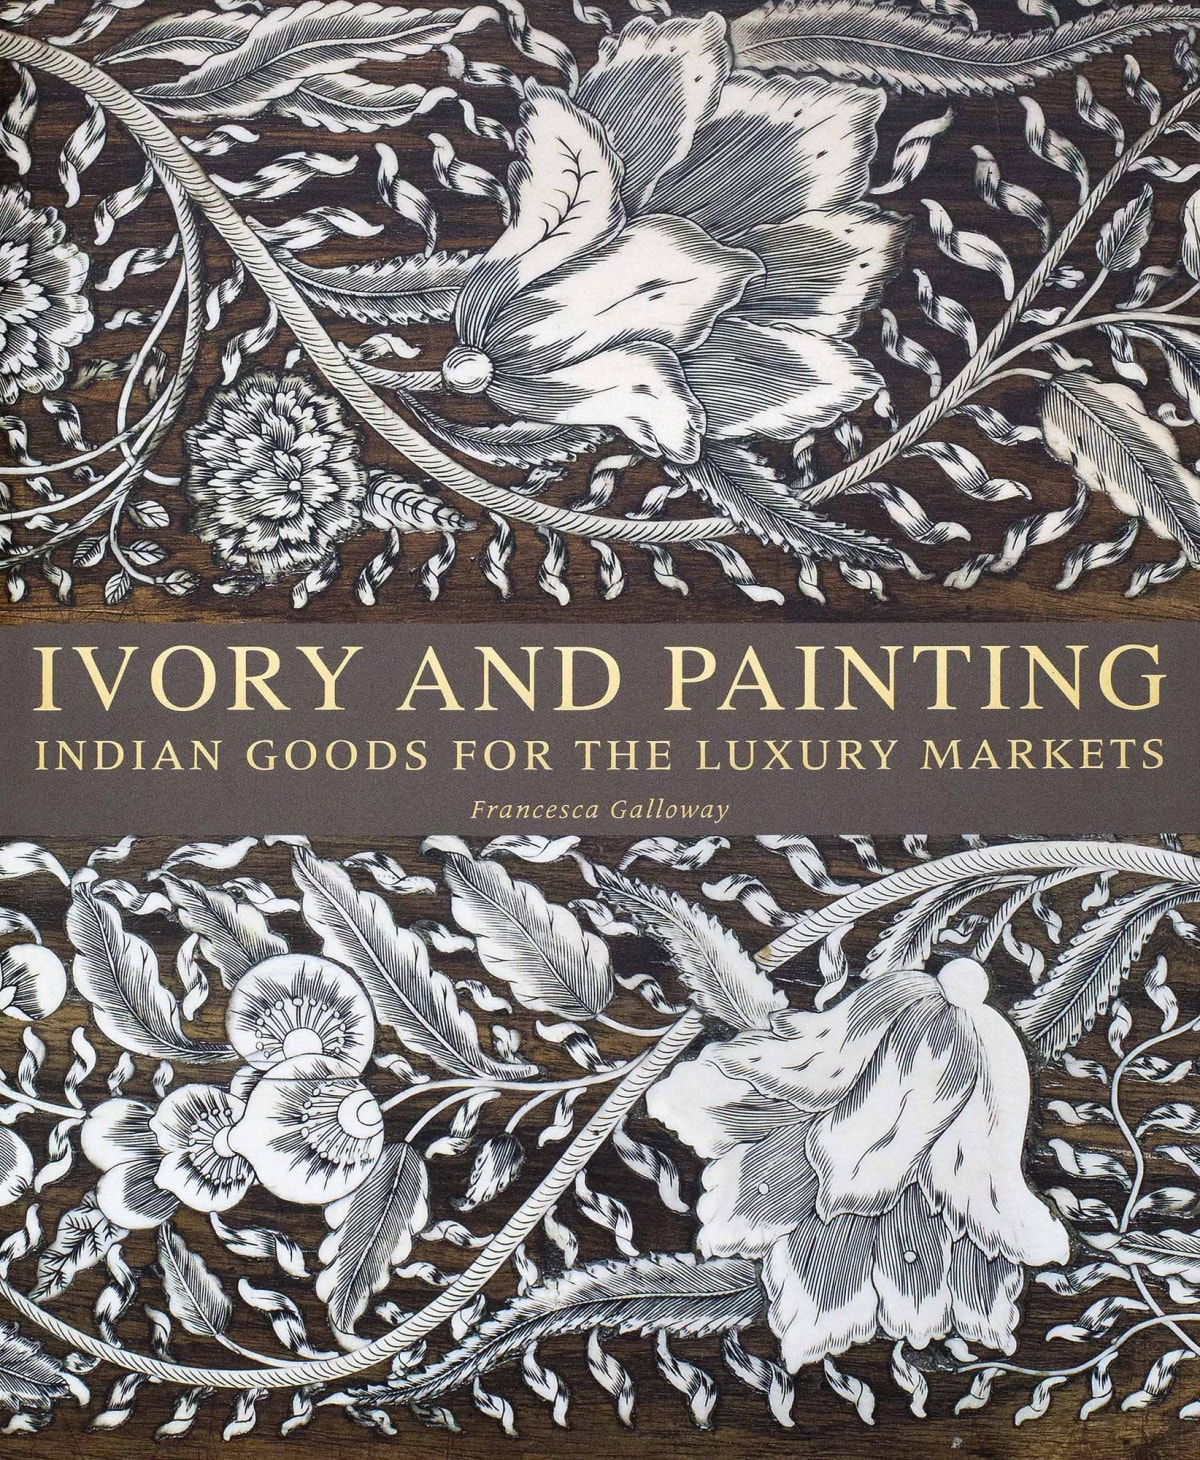 Ivory and Painting